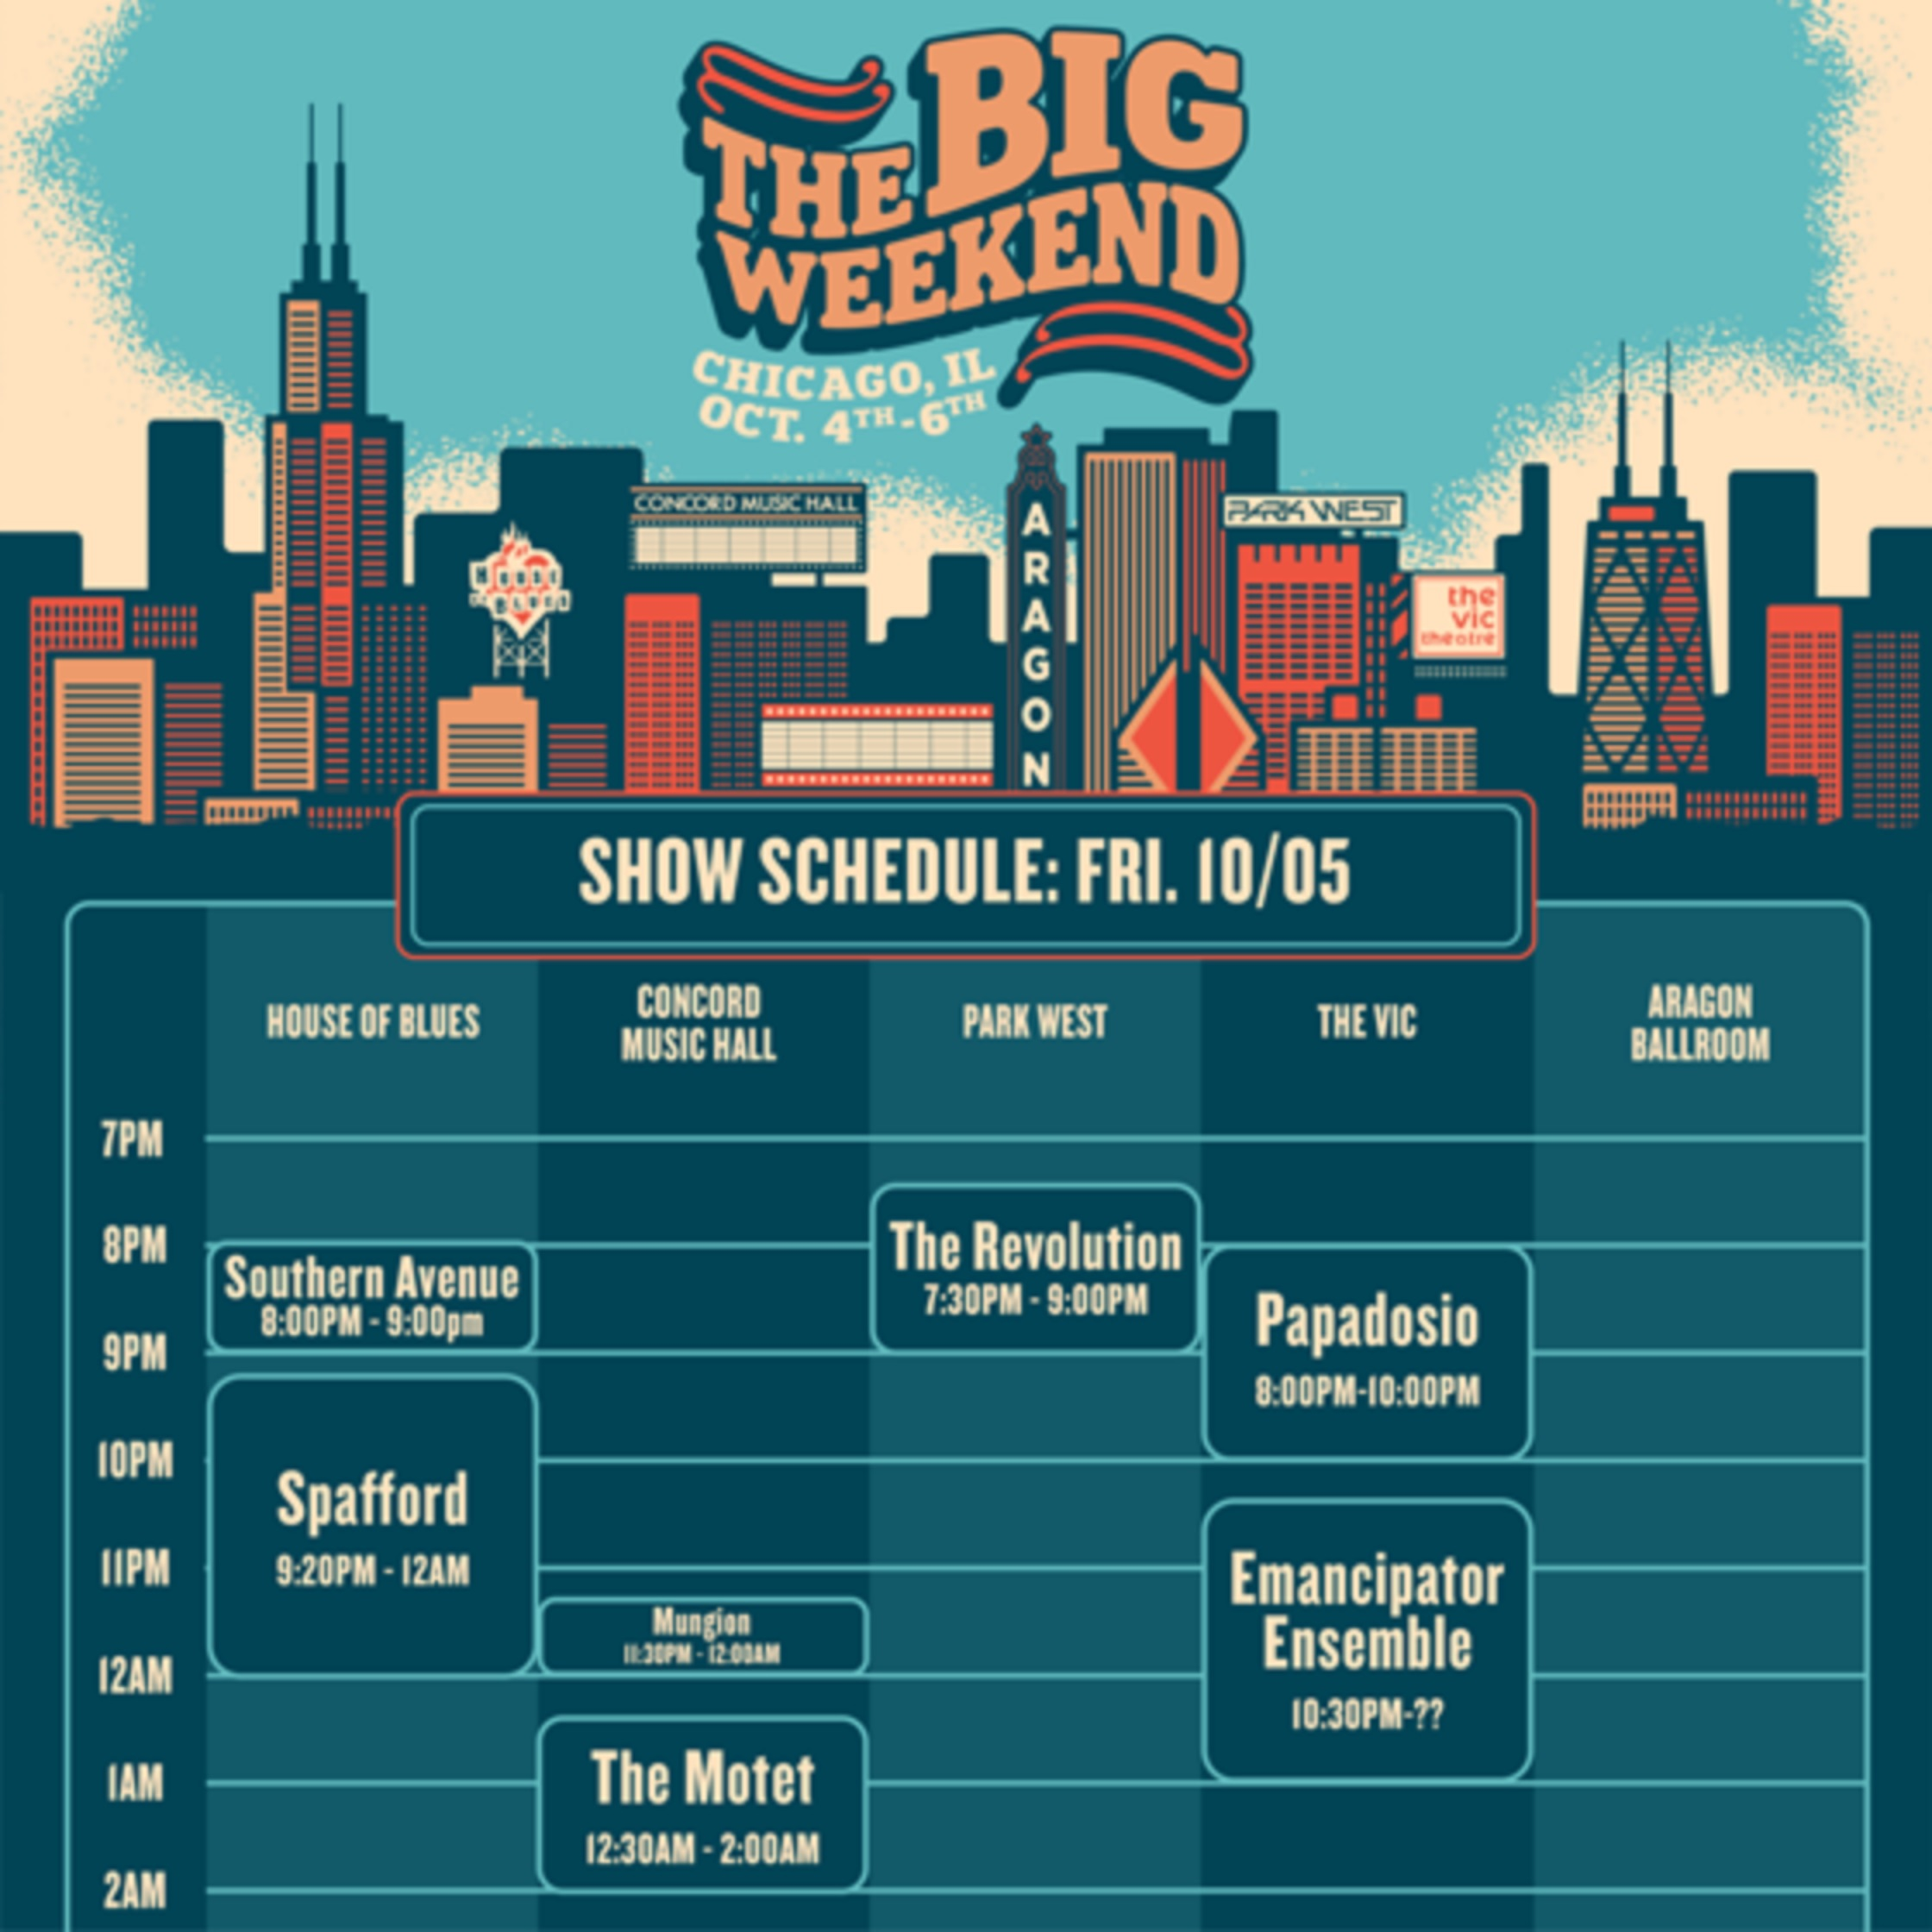 The Big Weekend | Inaugural Festival This Weekend